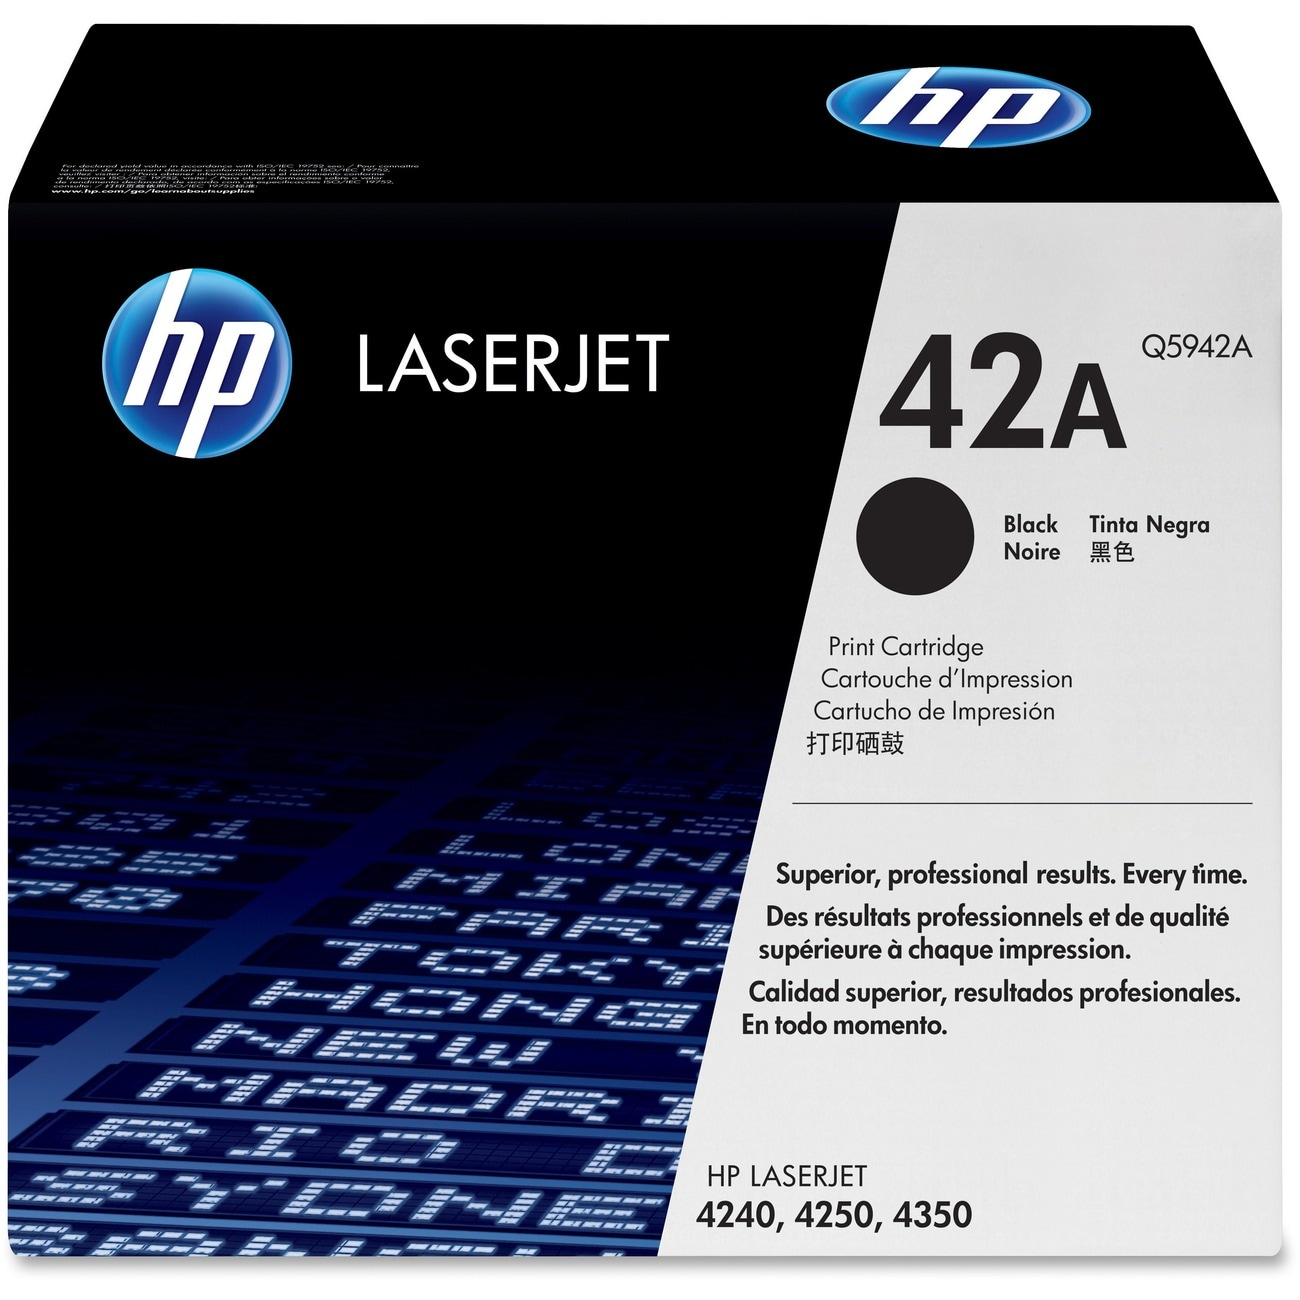 HP Genuine Black Toner Cartridge for LaserJet 4250/4350